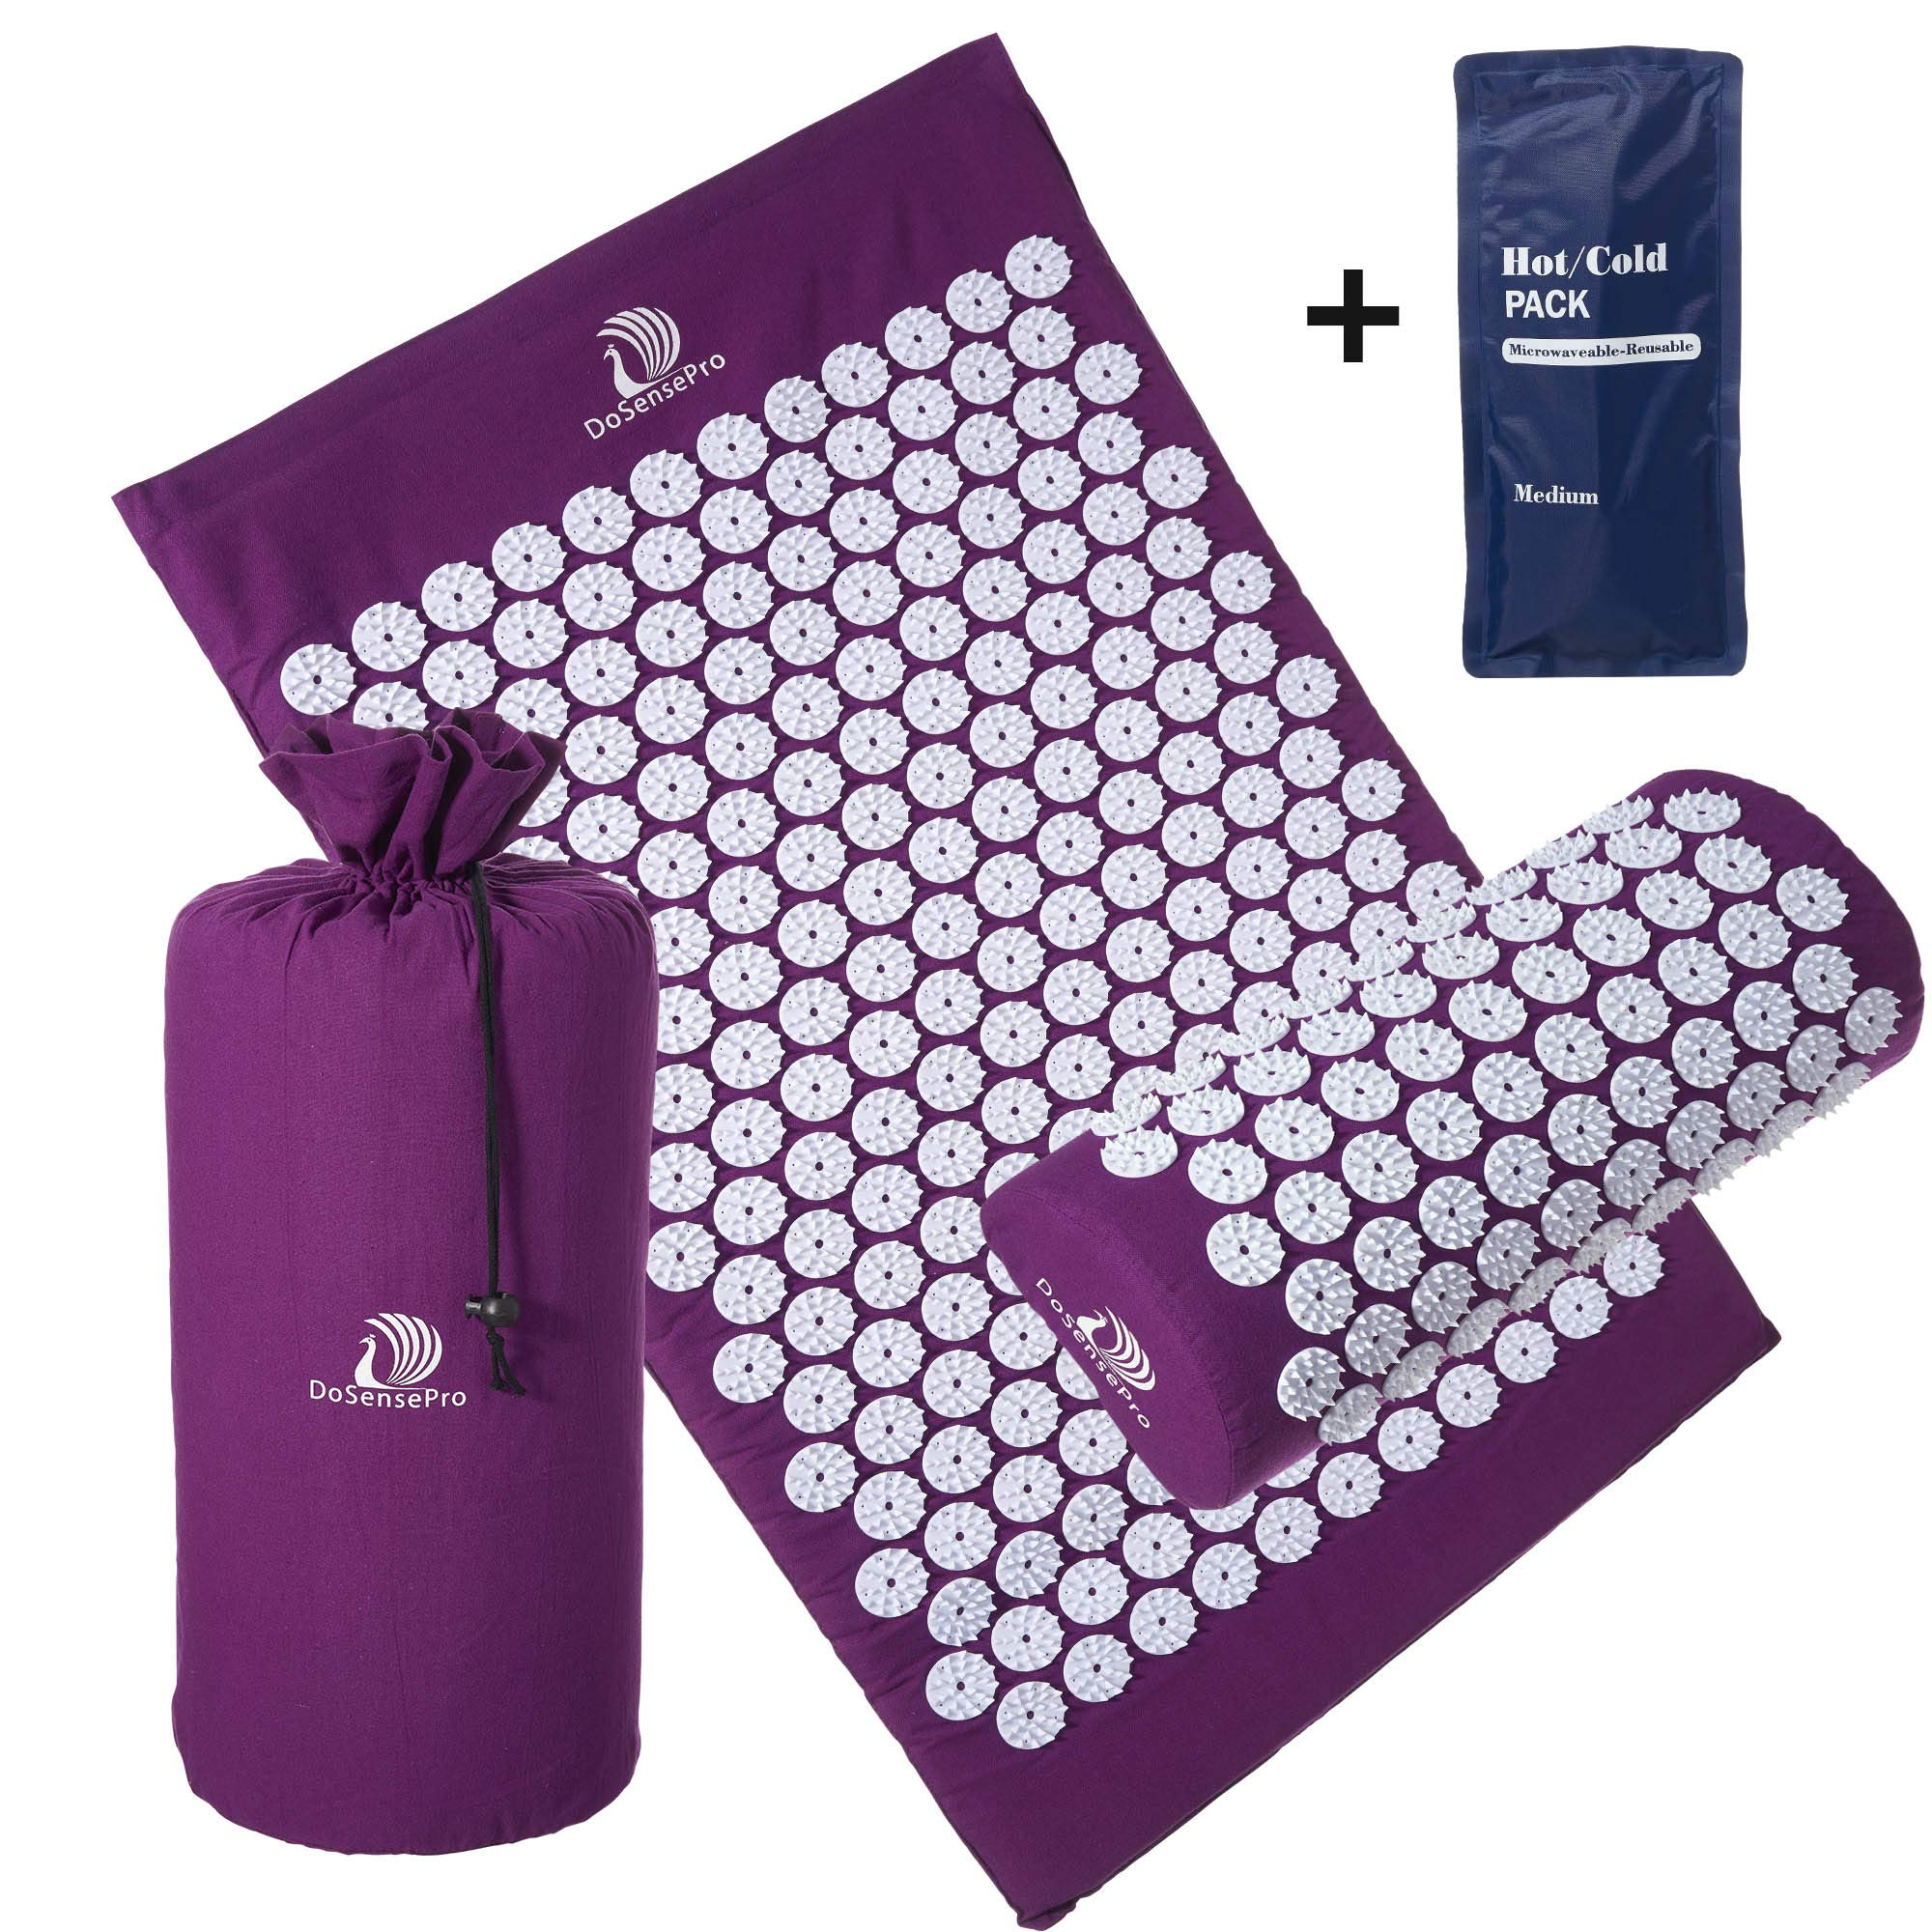 Acupressure Mat and Pillow Massage Set - by DoSensePro + Bonus Hot and Cold Gel Pack. Acupuncture Floor Pad with Travel Pouch Tote Bag. Relieve Sciatic, Back, Neck Aches and Pain at Pressure Points.